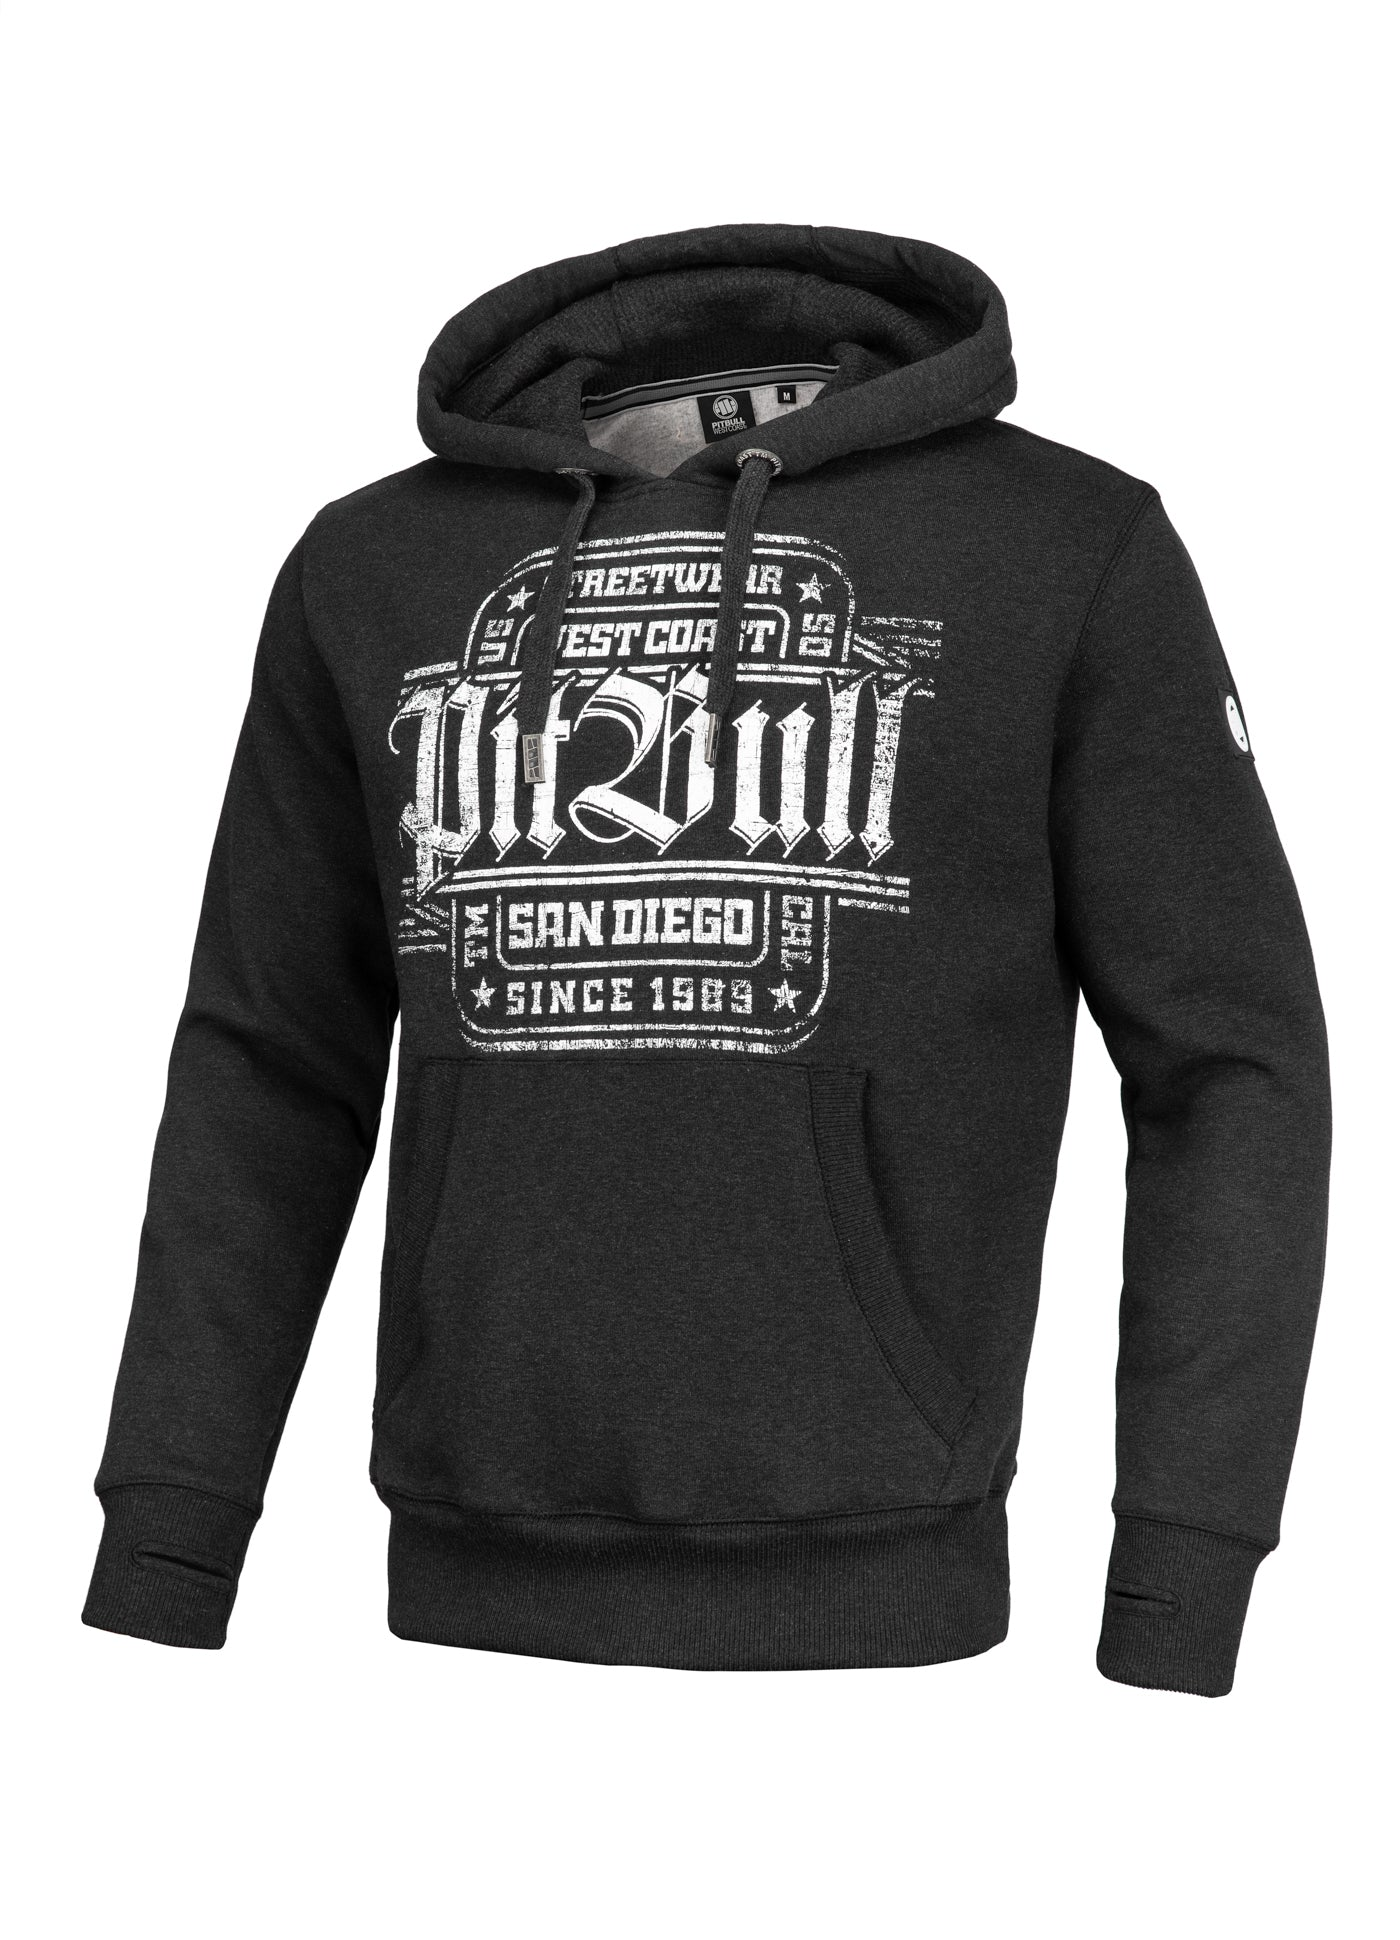 Hoodie SAN DIEGO IV Charcoal - Pitbull West Coast  UK Store